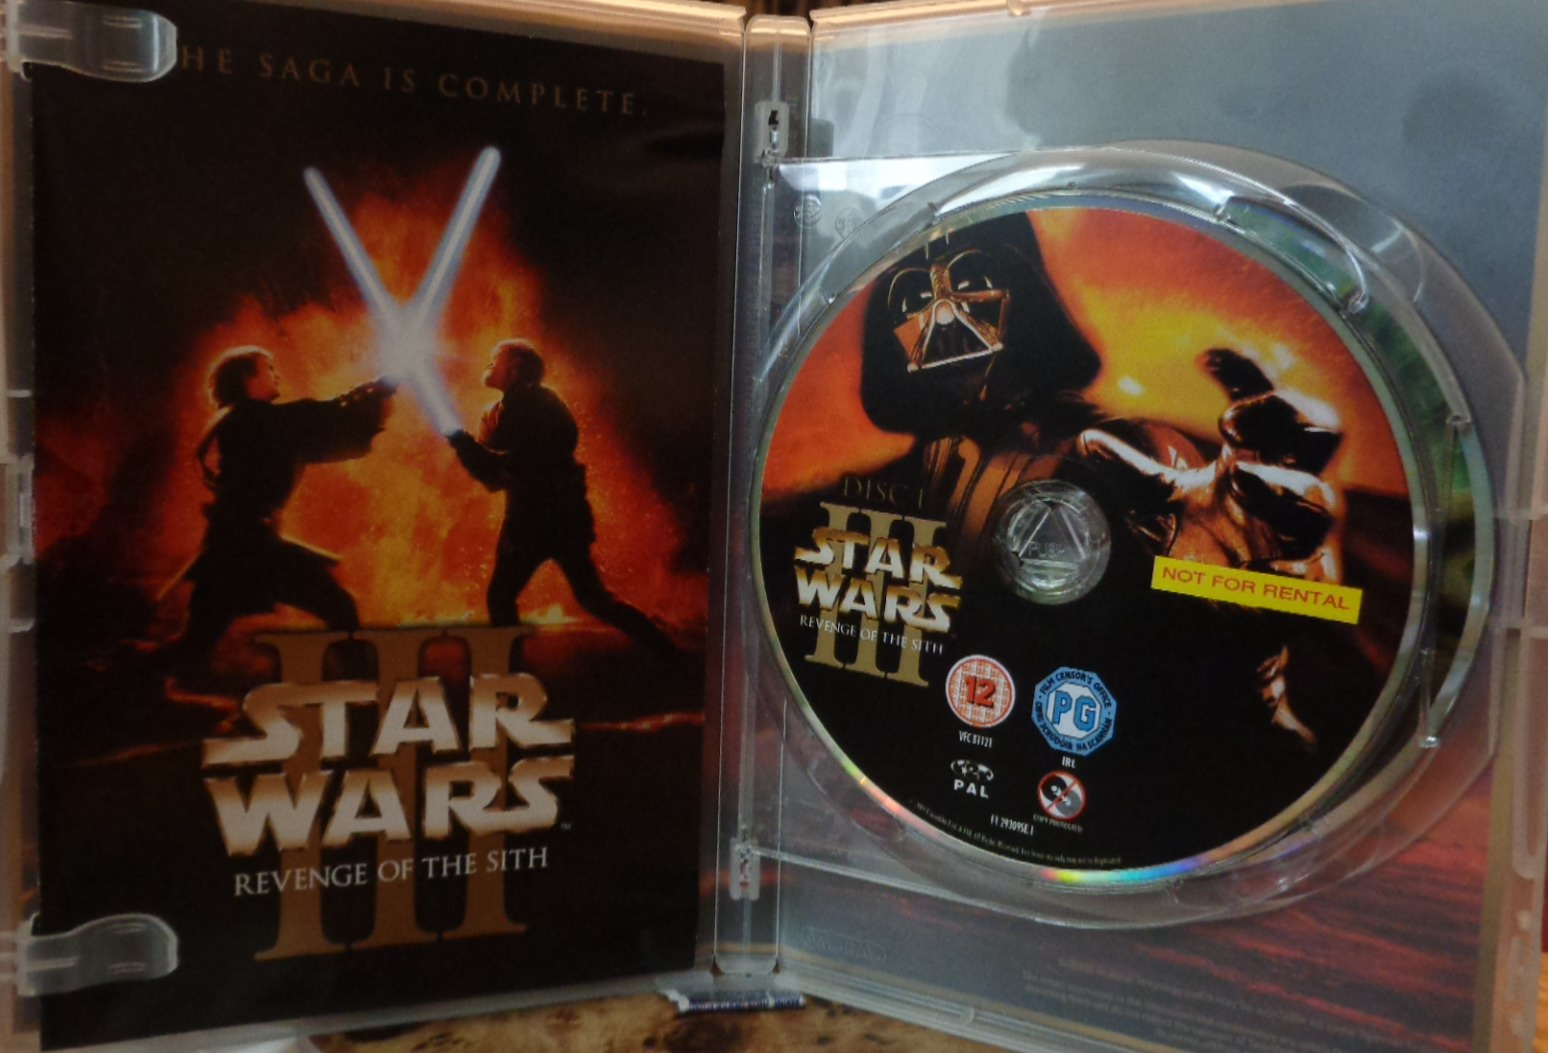 Movies On Dvd And Blu Ray Star Wars Iii Revenge Of The Sith 2005